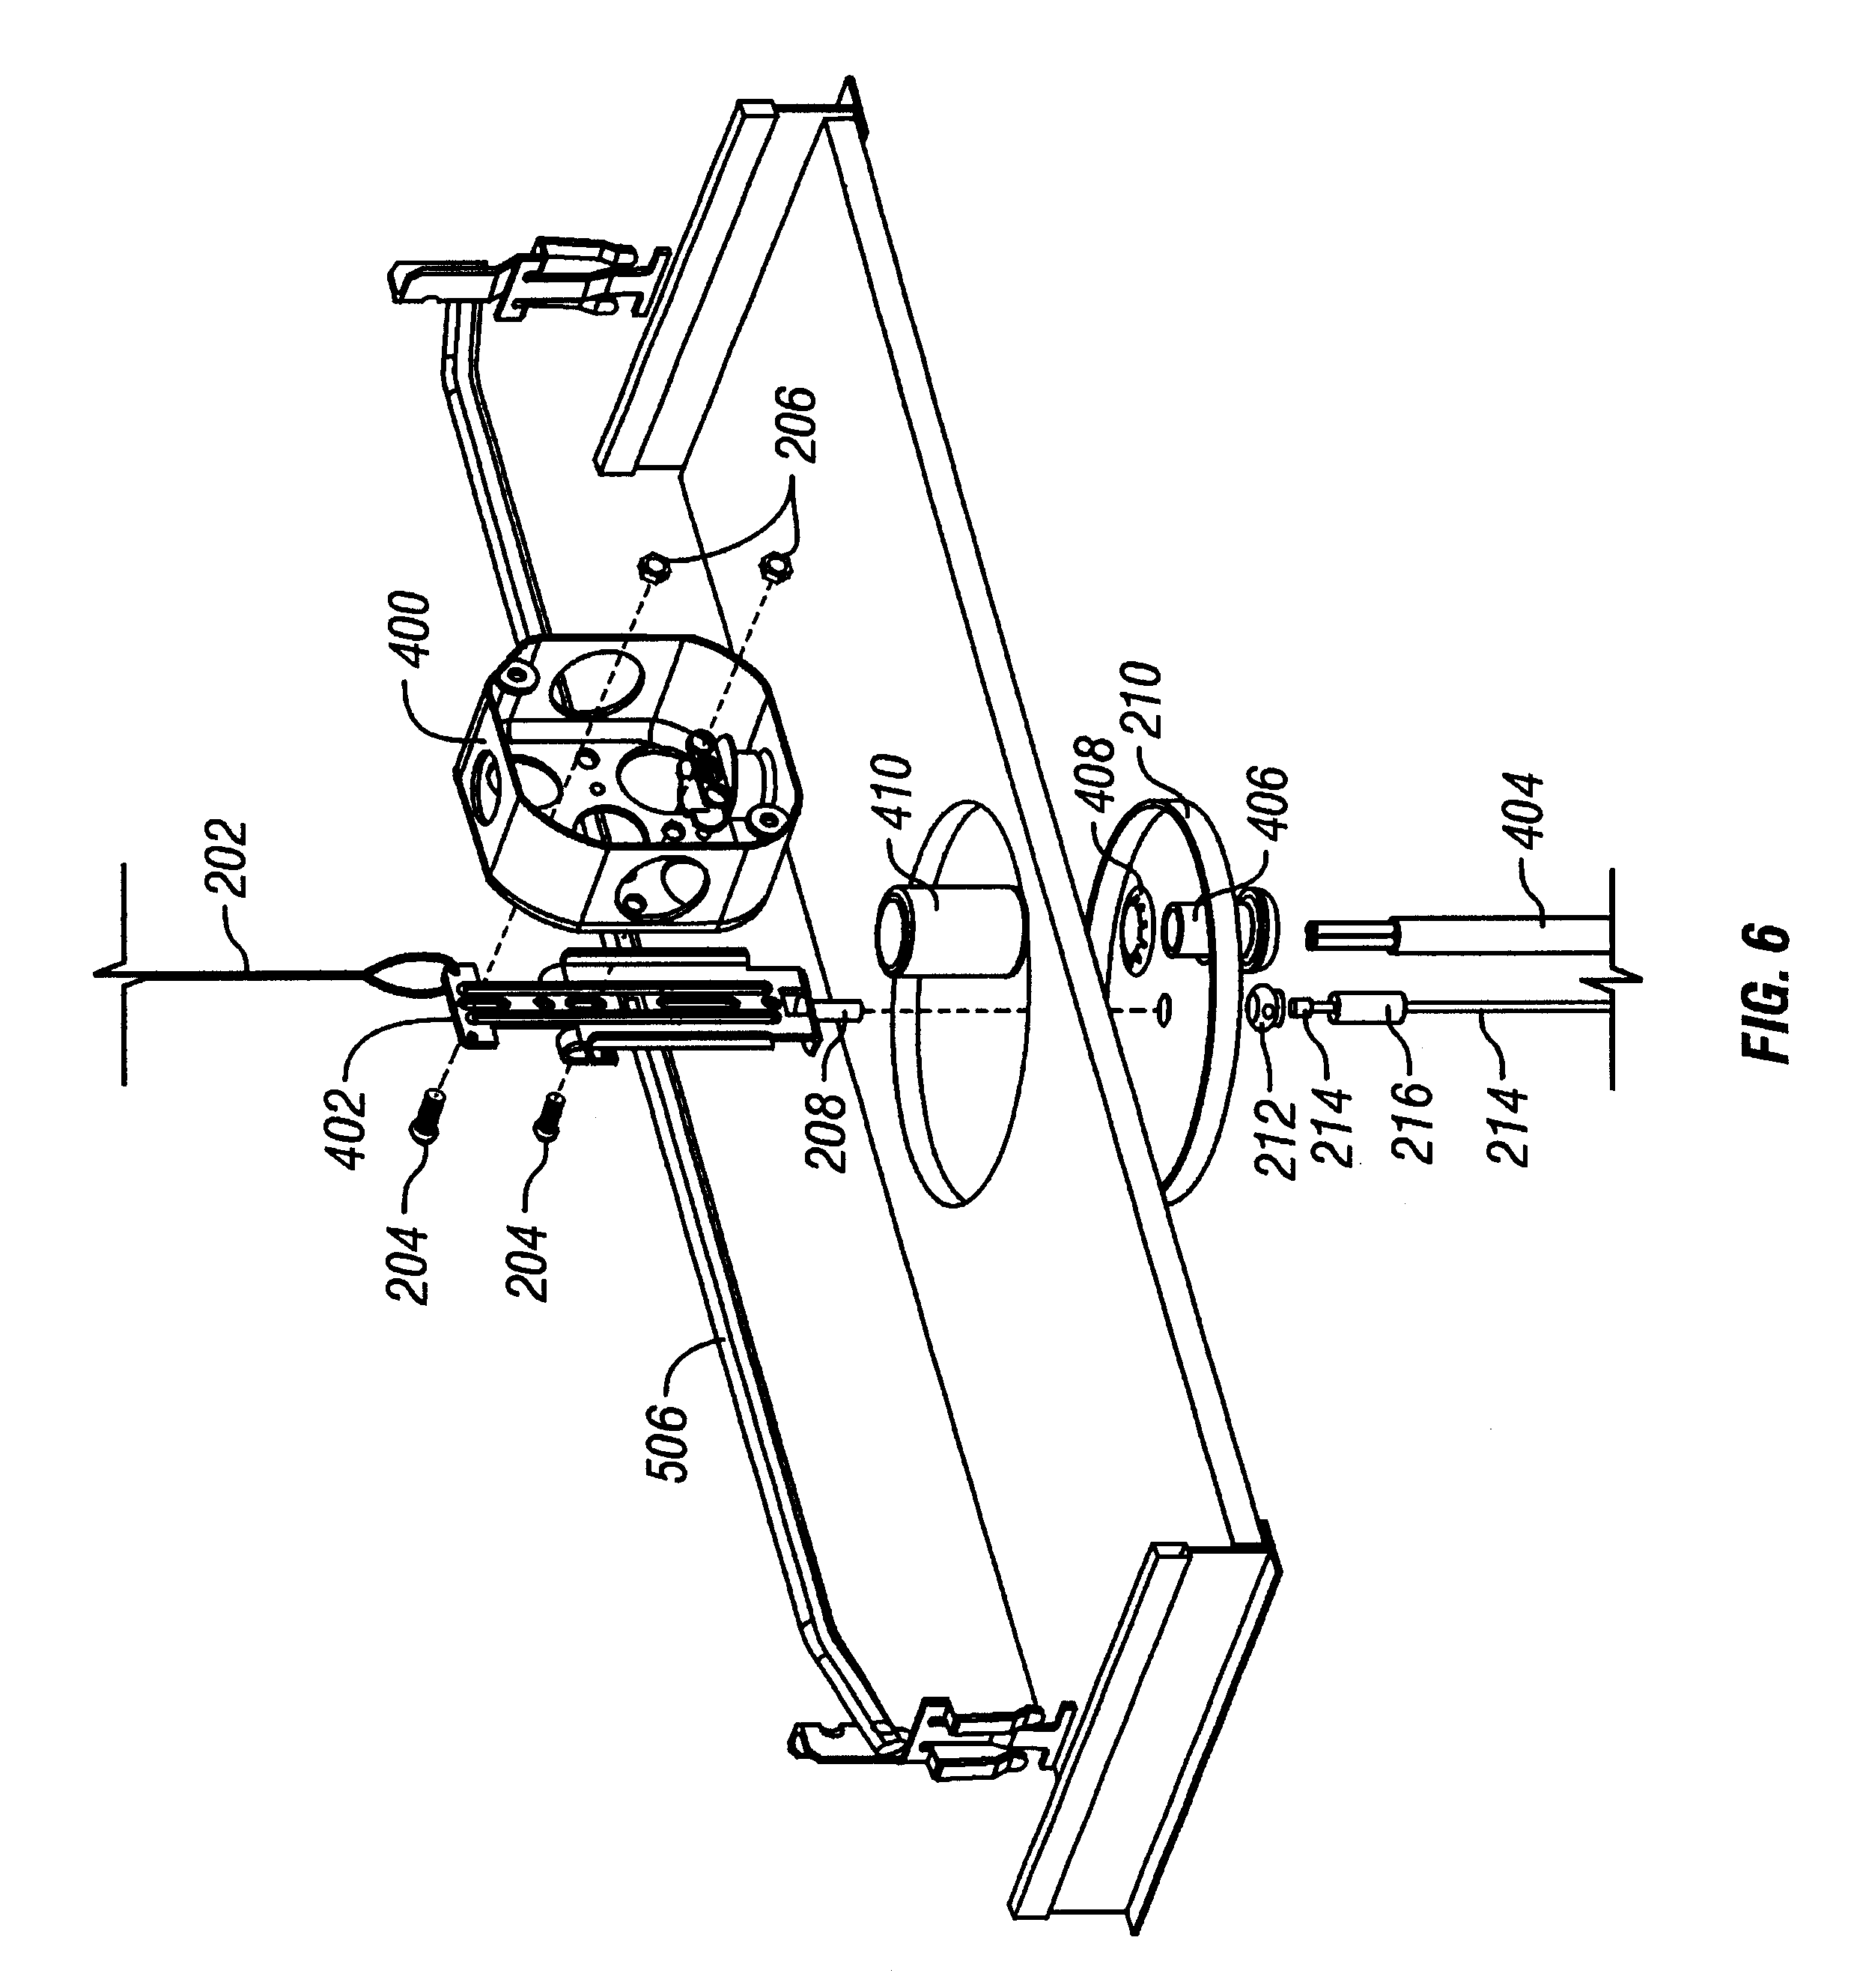 System And Method For Mounting Pendant